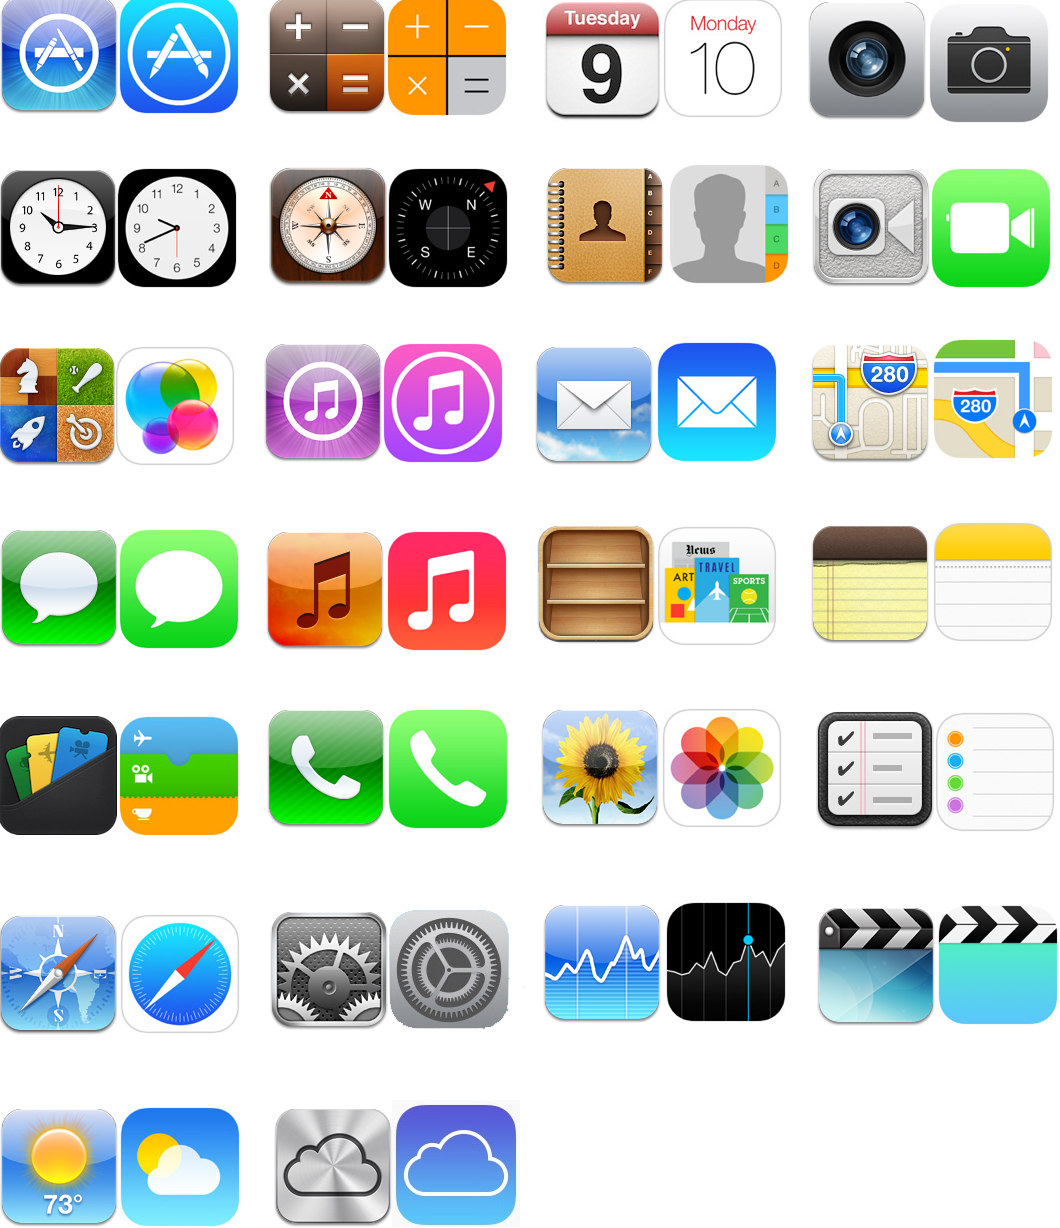 6 IOS Home Icon Images